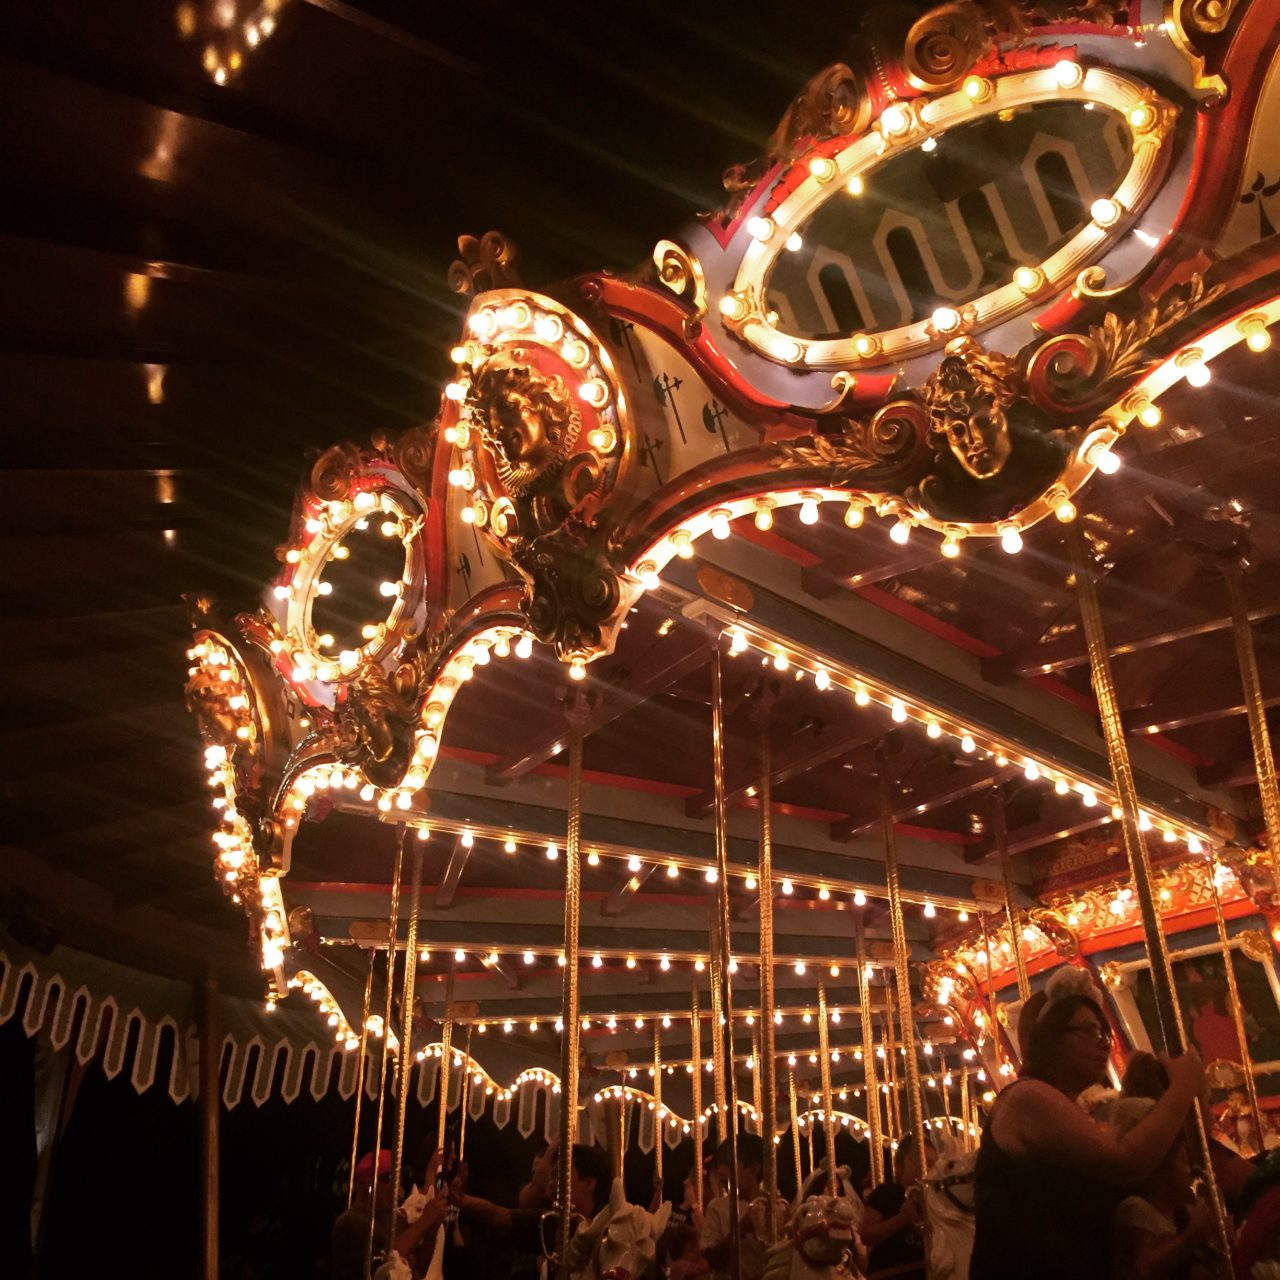 King Arthur's Carousel at night